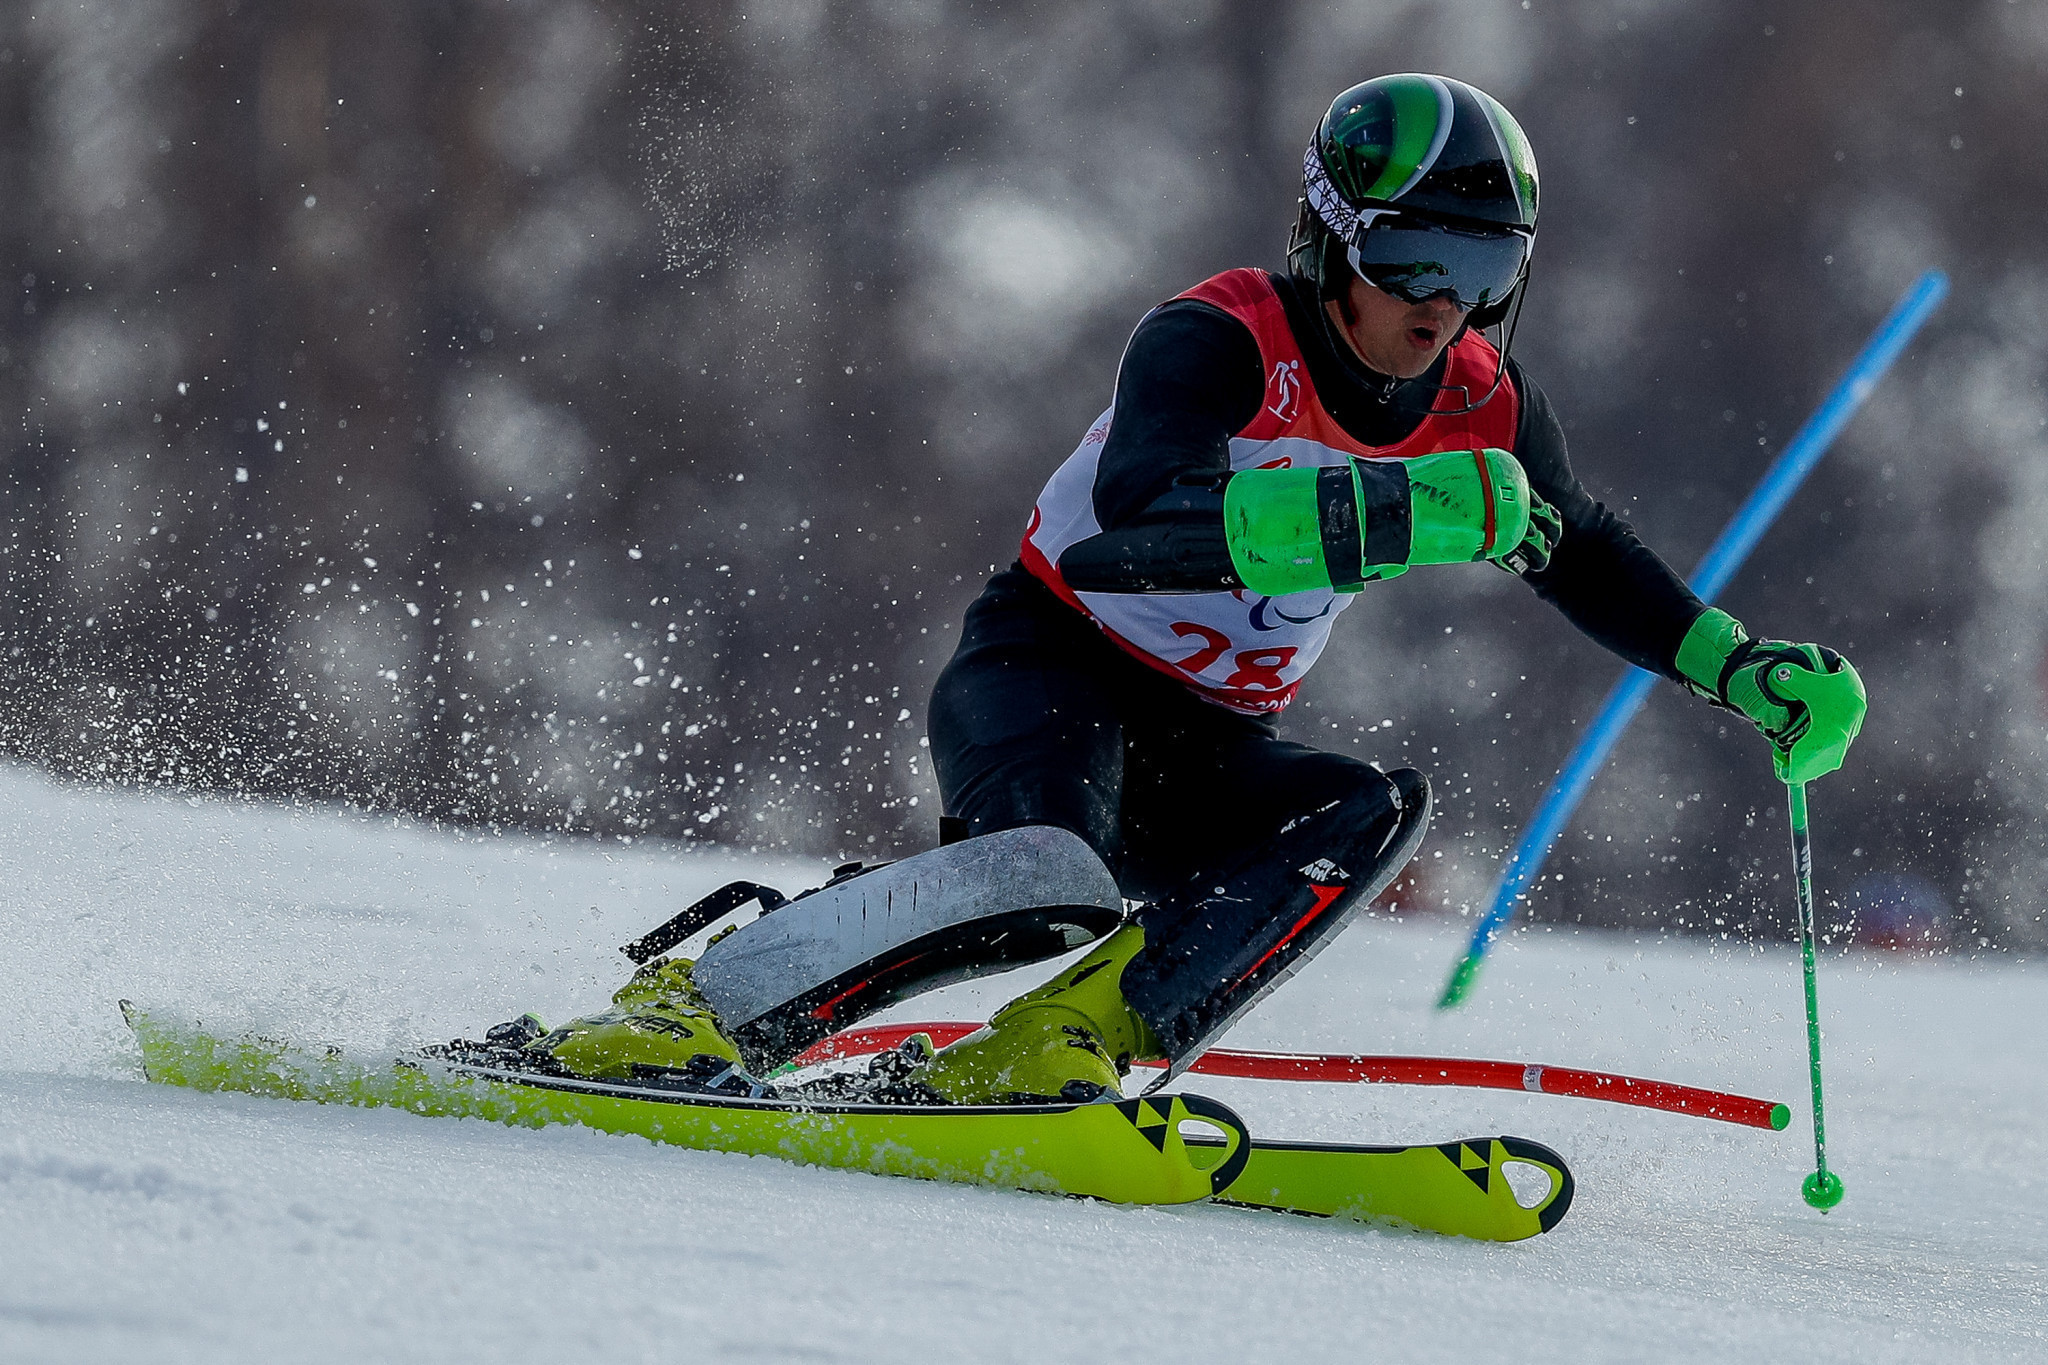 Russia's three-time Paralympic champion Aleksei Bugaev had another close series of races with France's double world champion Arthur Bauchet ©Getty Images